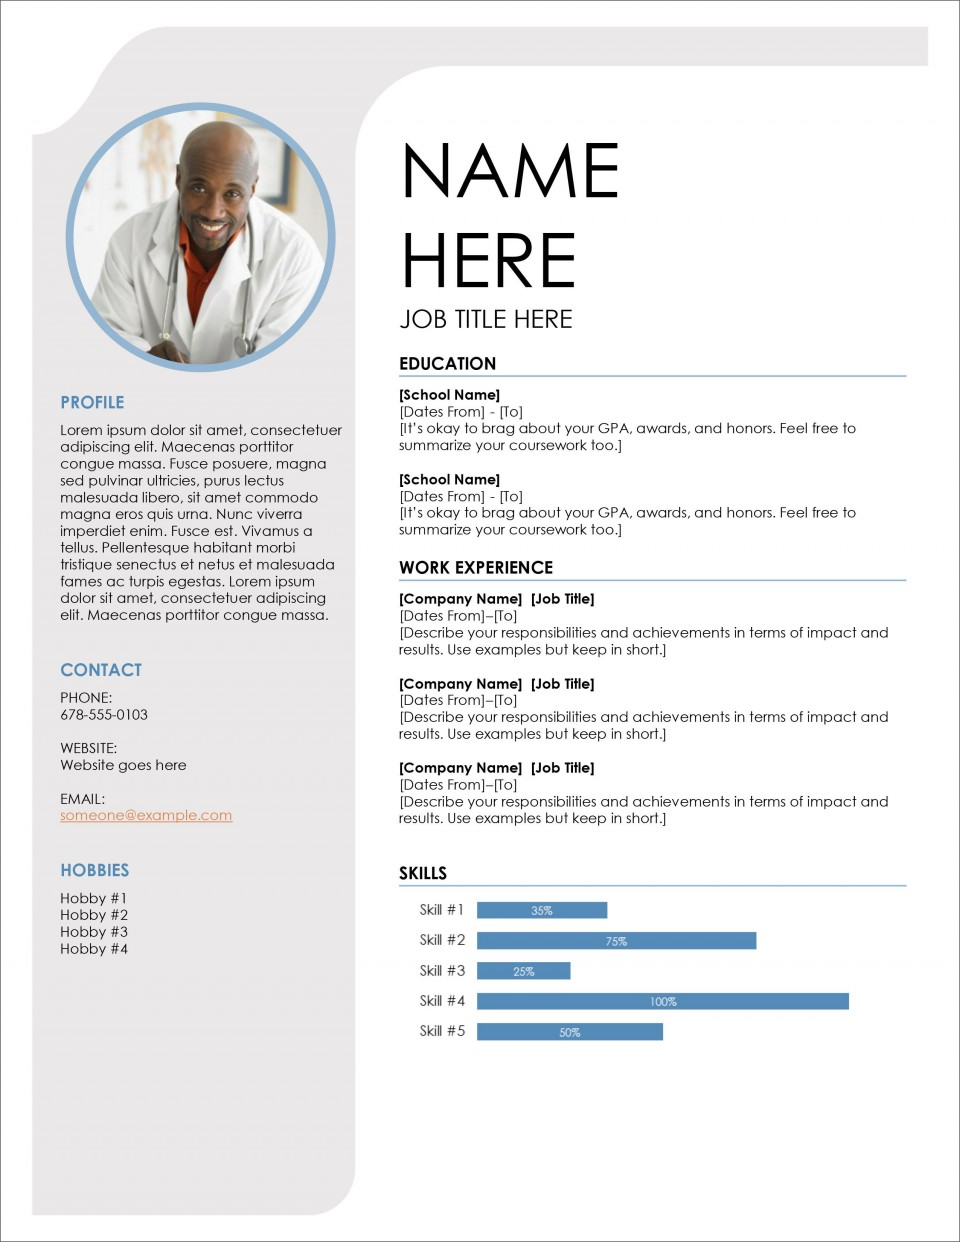 009 Unbelievable Word Resume Template Free Download Highest Clarity  M Creative Curriculum Vitae Cv960